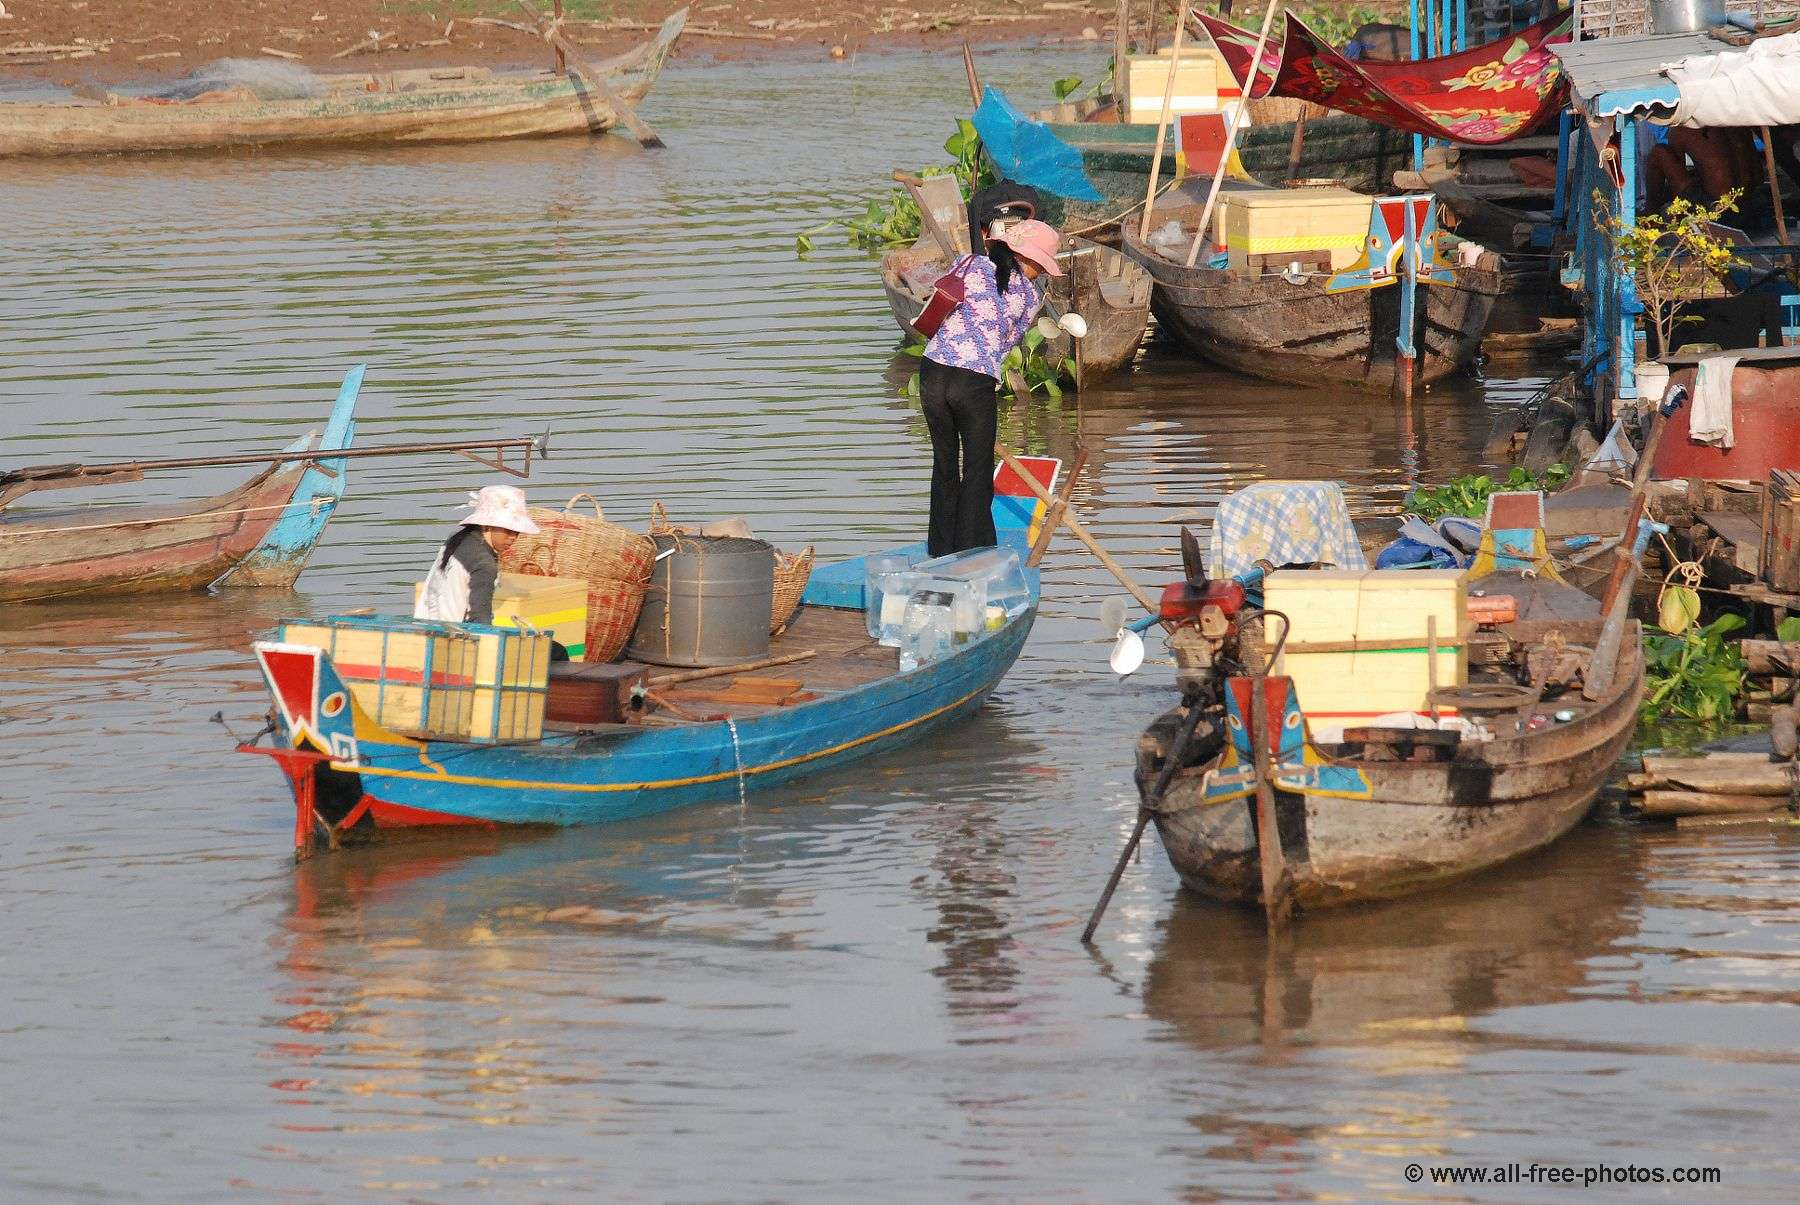 Daily life on the Mekong - Cambodia